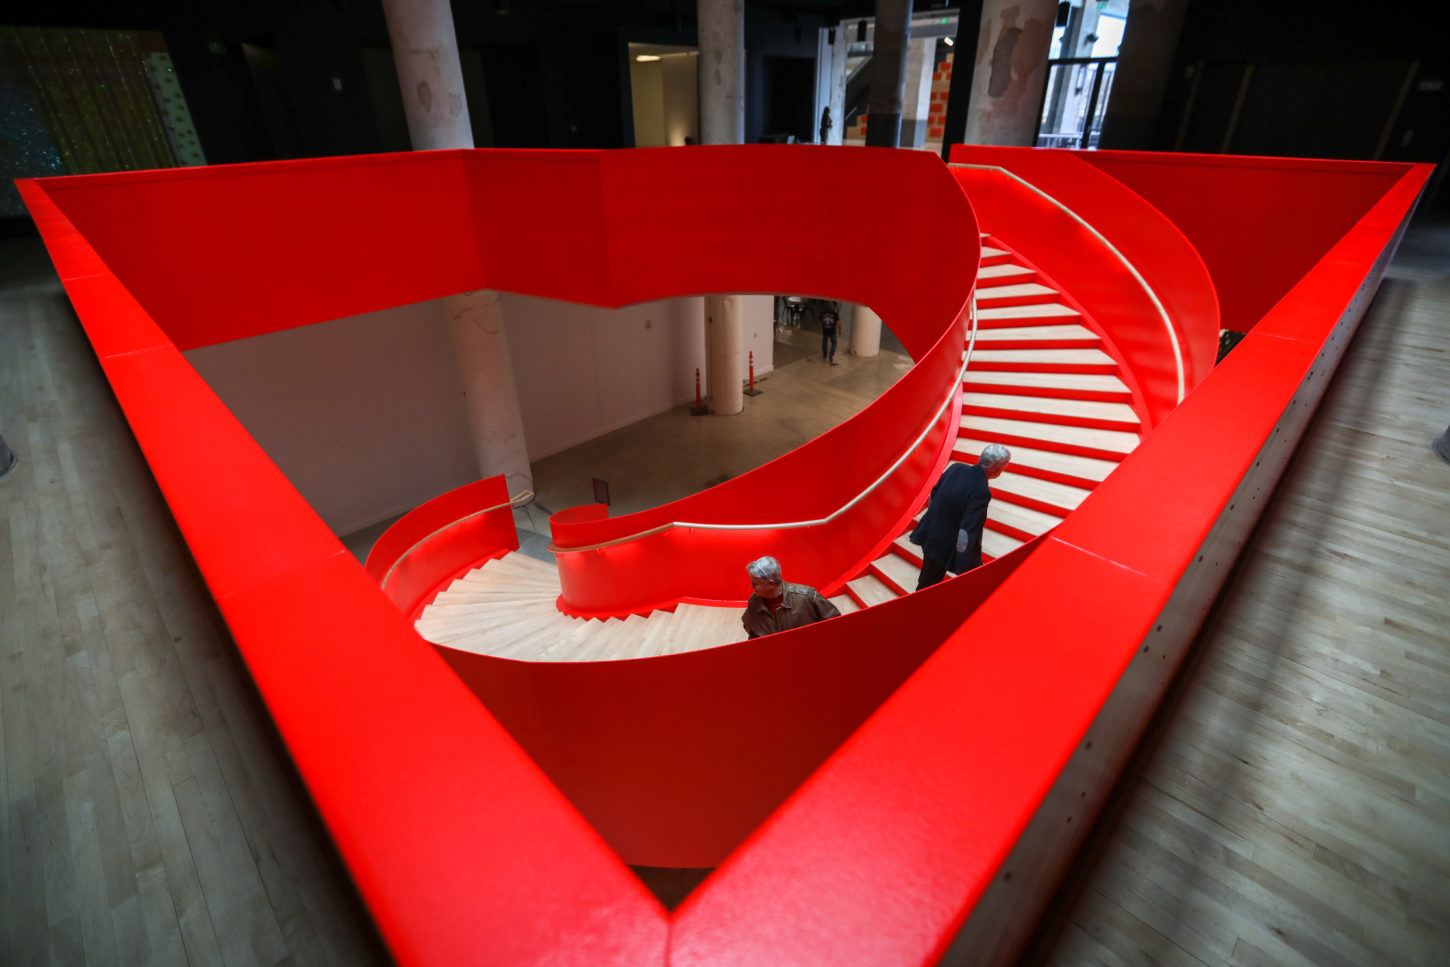 Red-Stair-Pic-large-1450x967.jpg